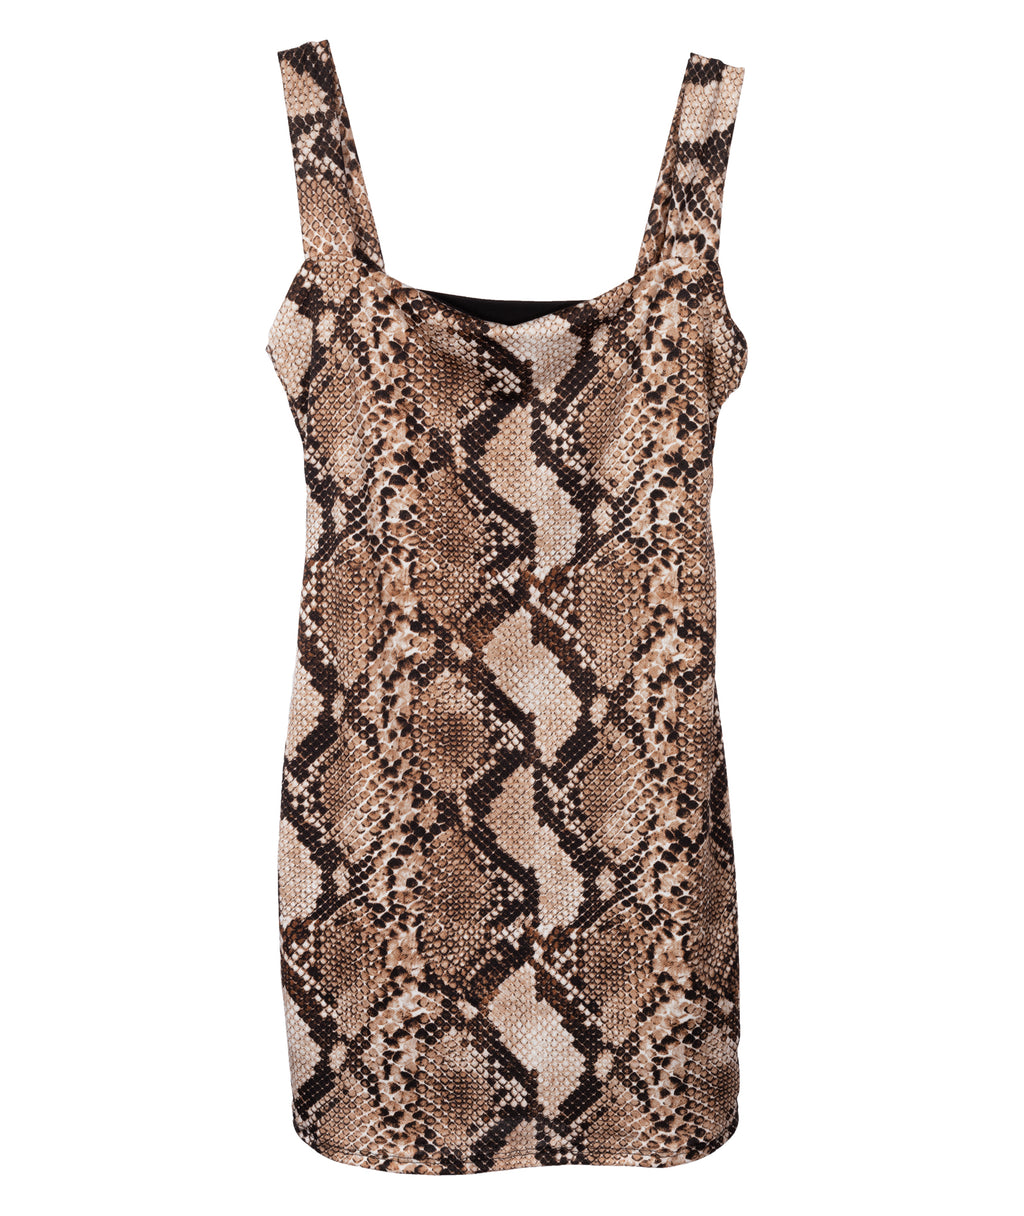 Cheryl Creations Junior Snake Dress